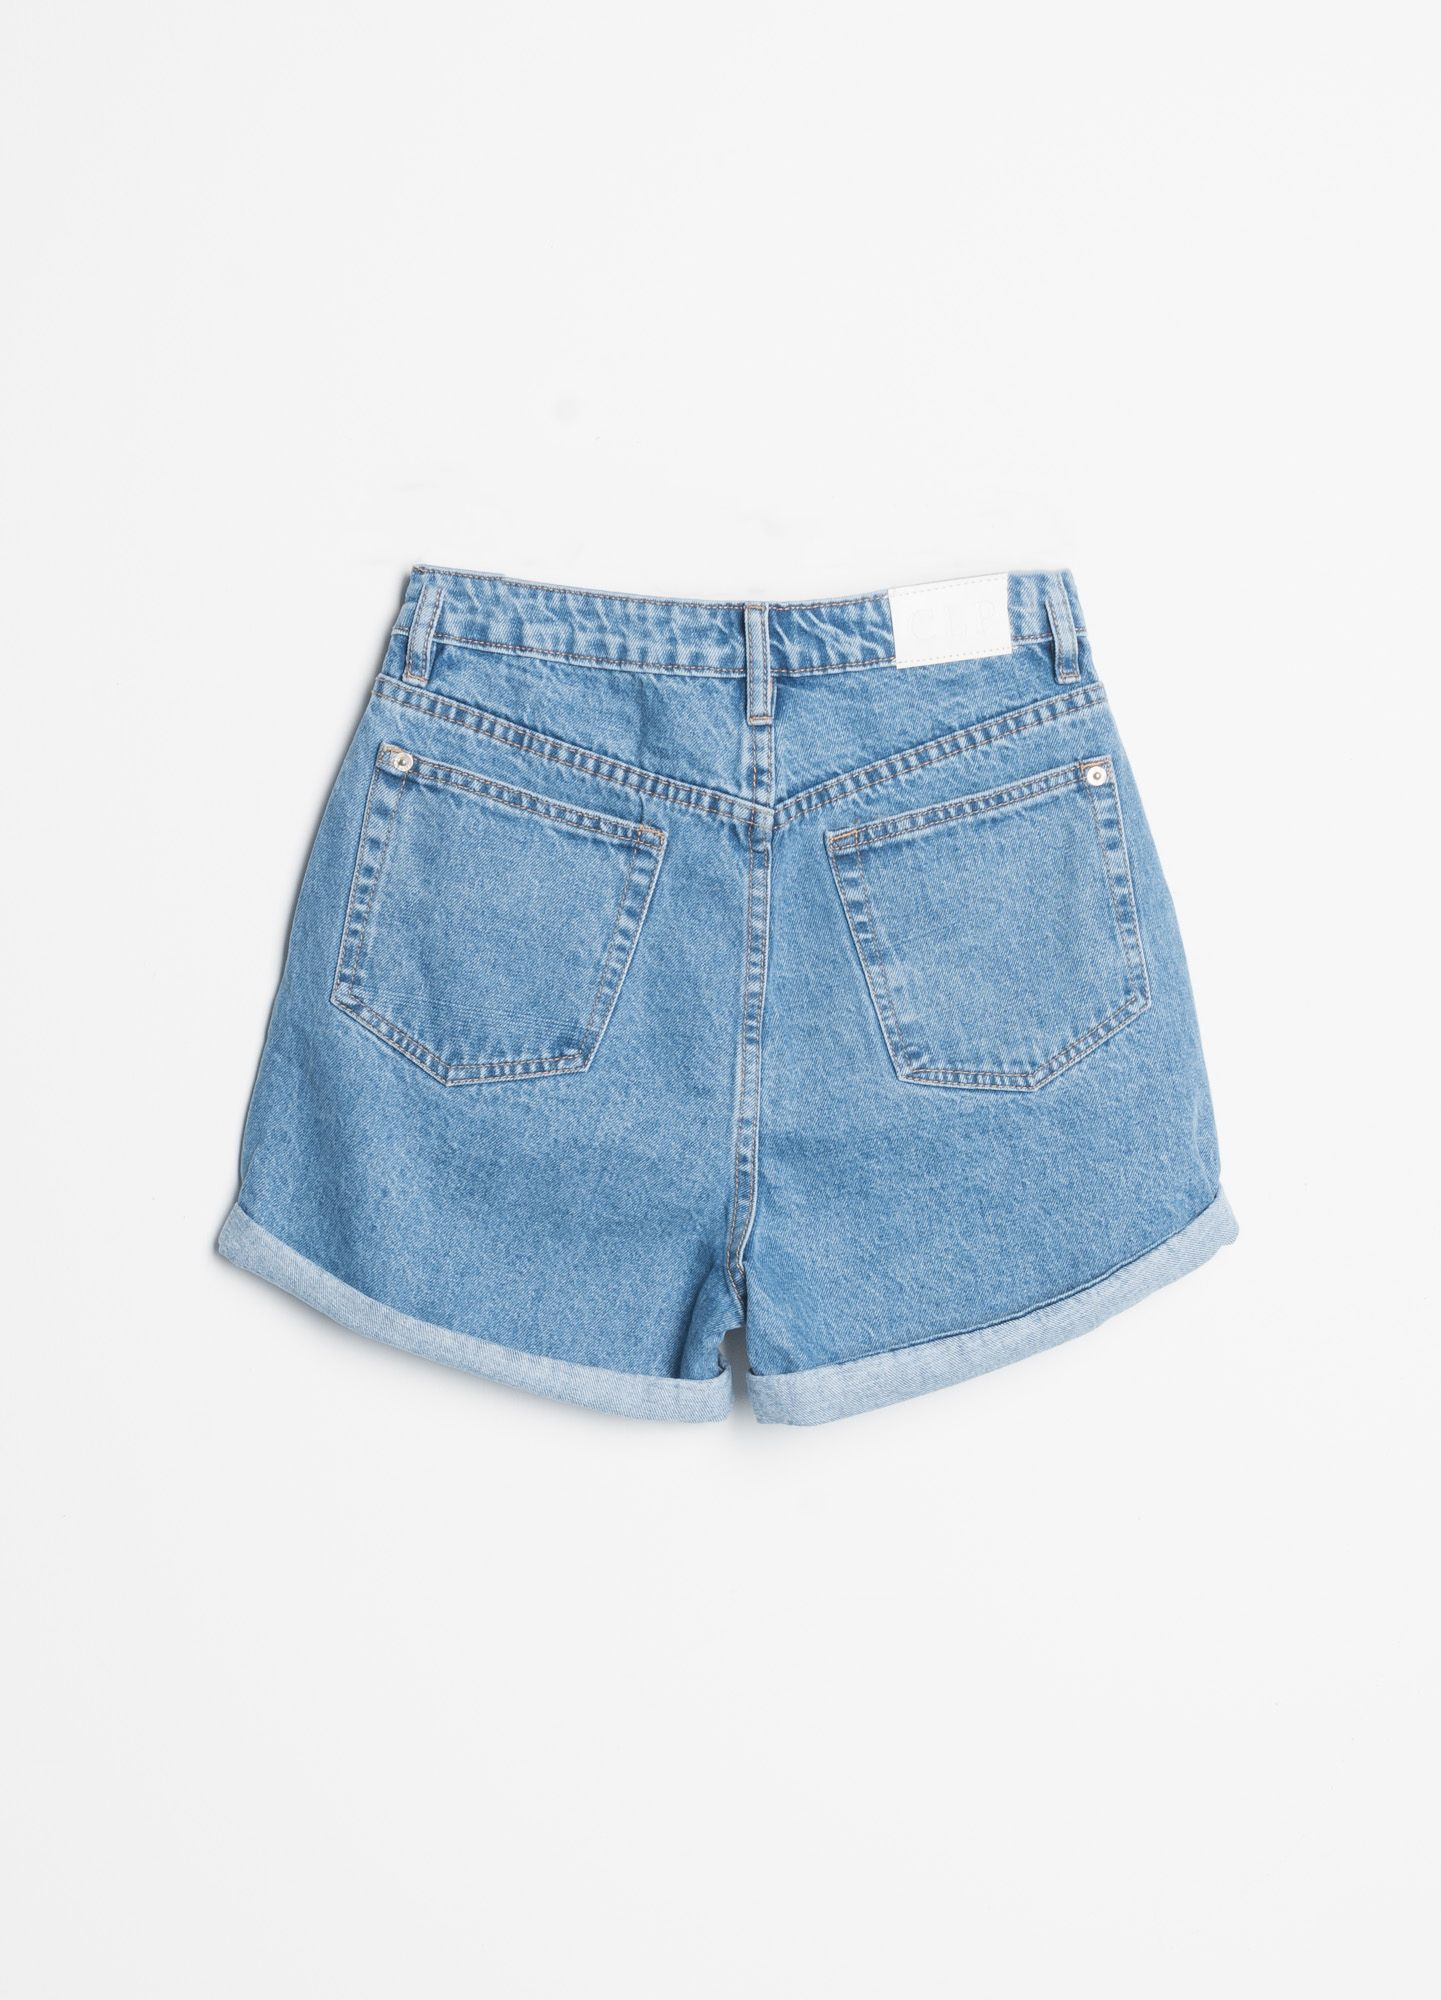 MOM FIT JEANS SHORTS